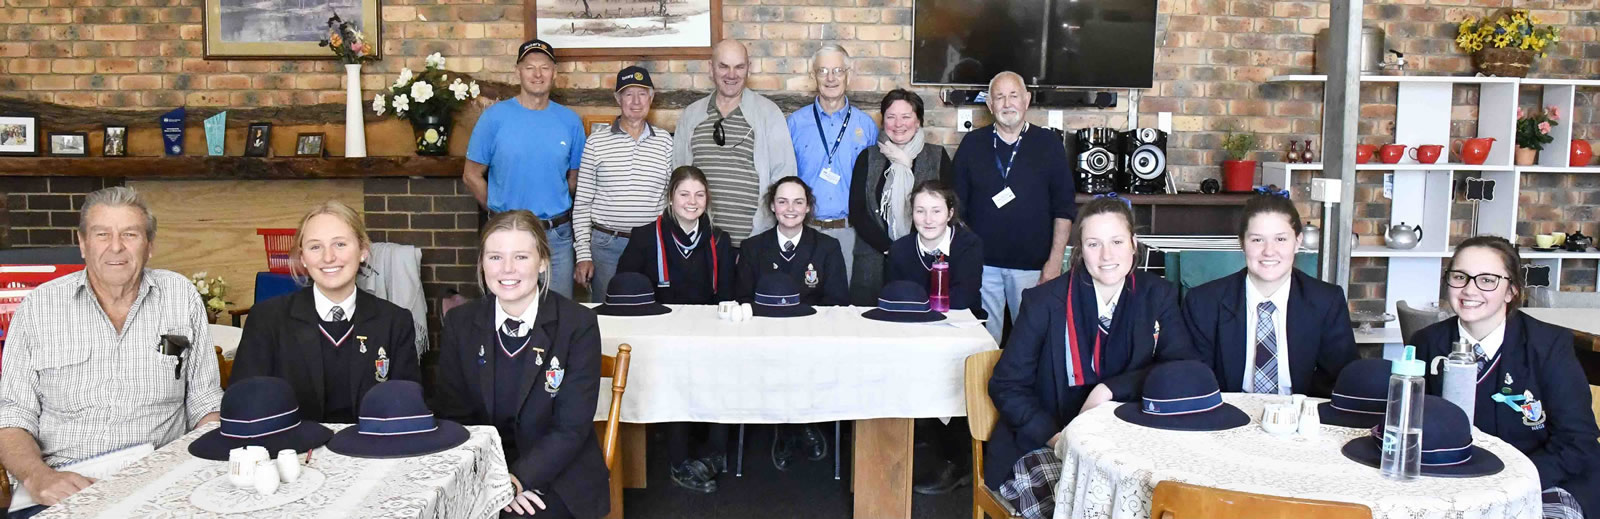 2017 Armidale Central Rotary regular meal delivery volunteers with NEGS students.